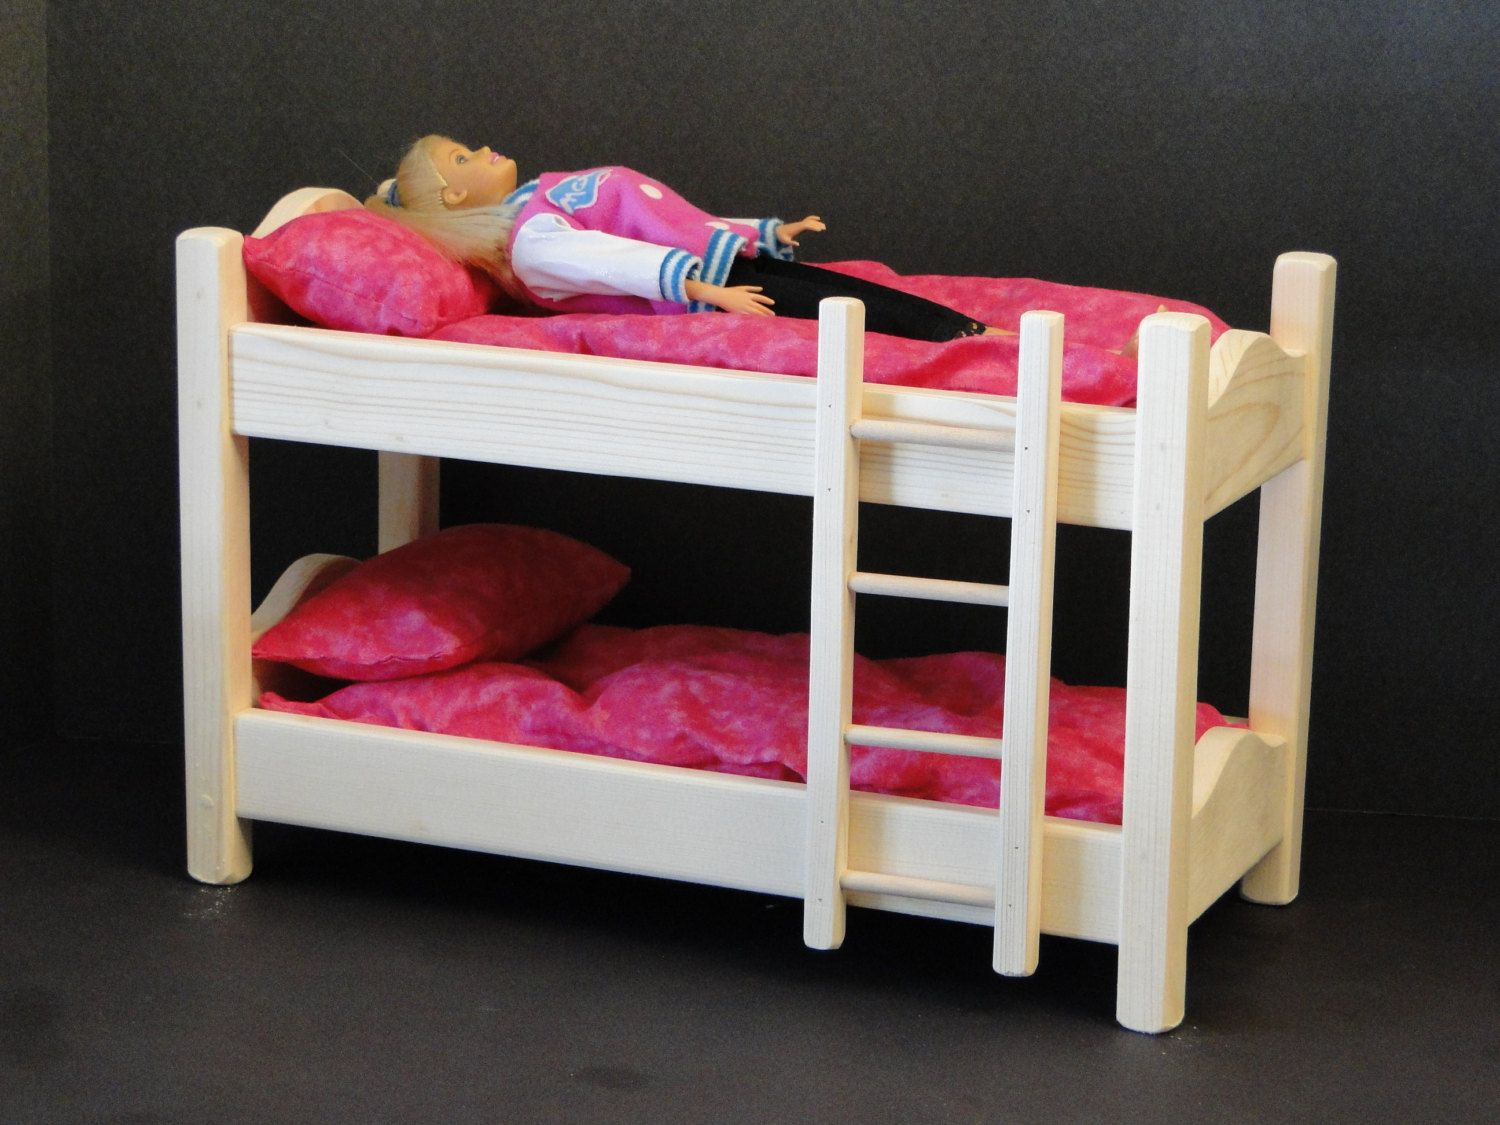 12 Inch Doll Bunk Bed With Mattress 094 Christmas List Ideas For